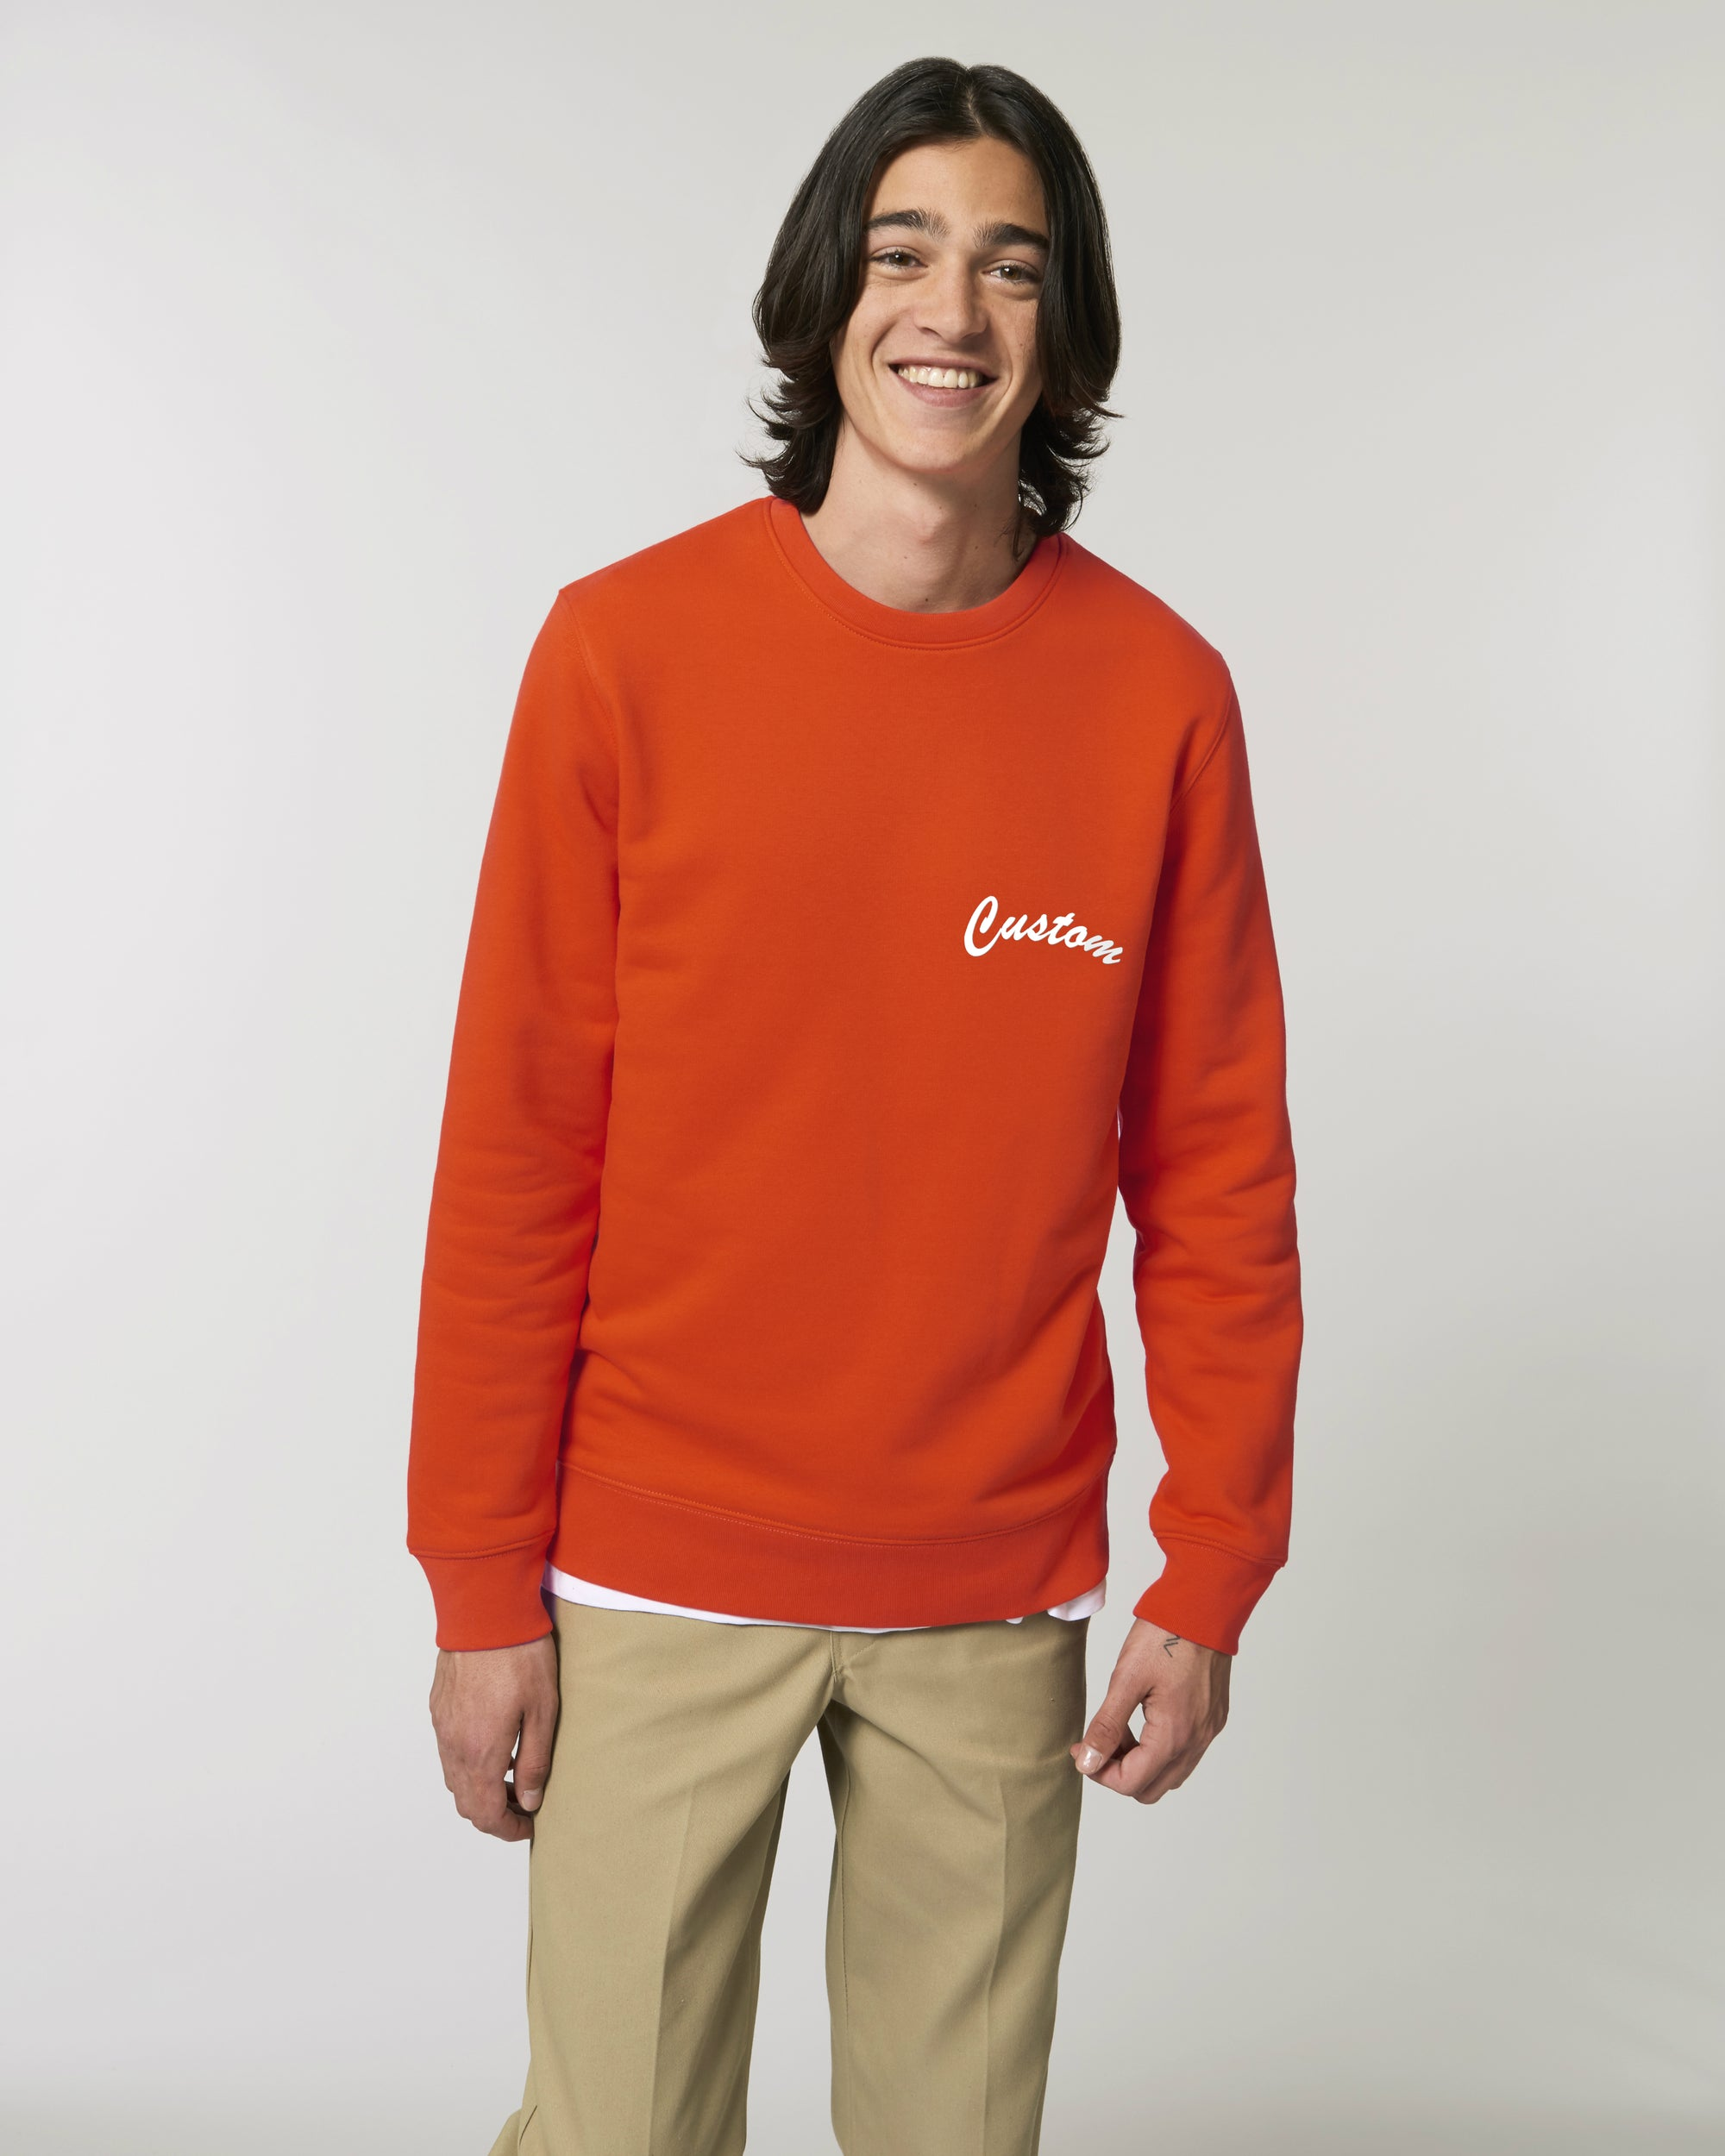 MEN'S ORGANIC COTTON CREW NECK 'CHANGER' SWEATSHIRT - customisable left chest embroidery